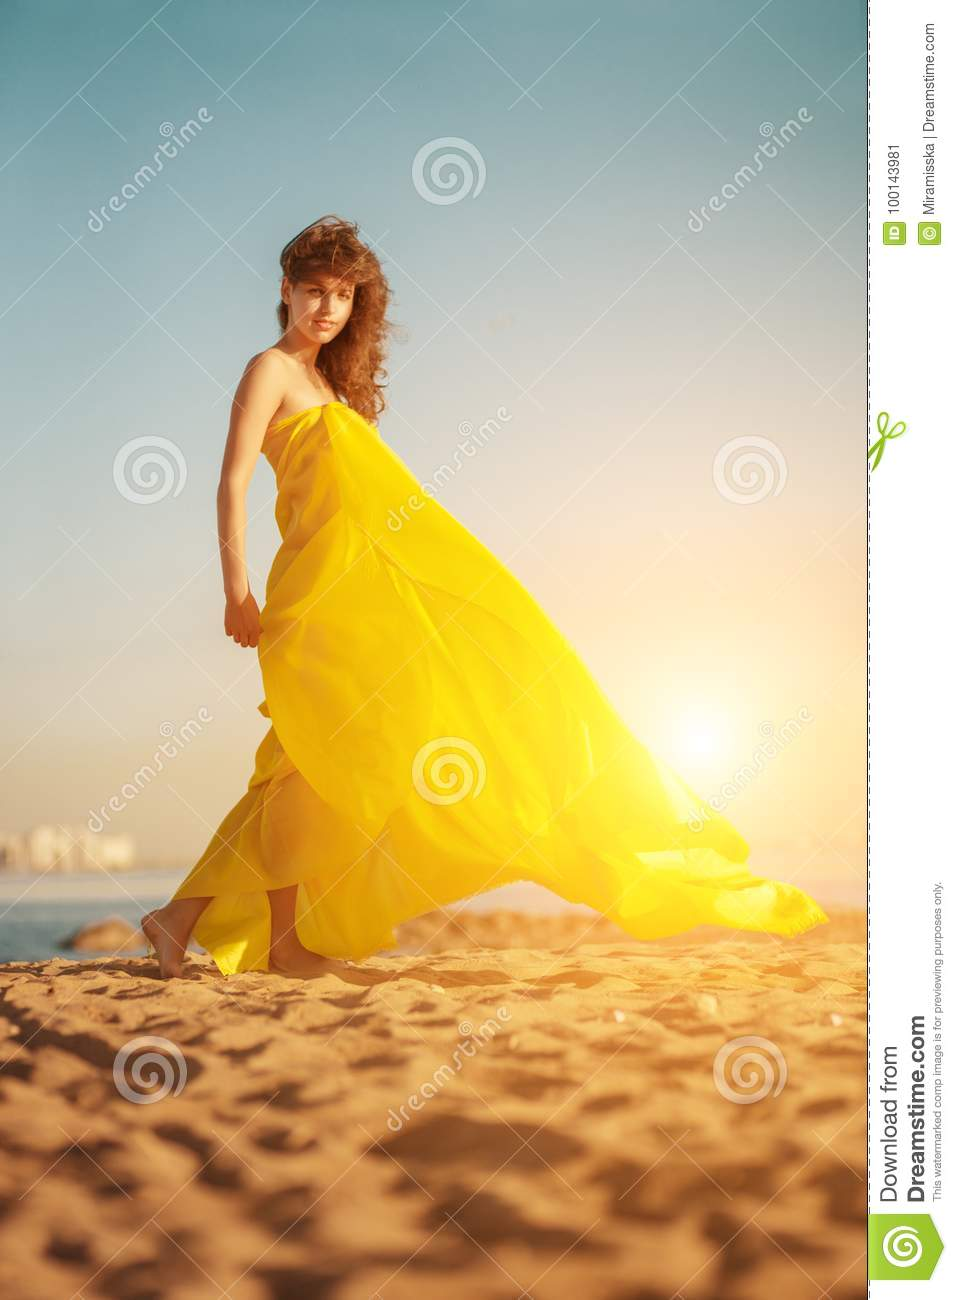 Fashion girl in a long dress against a summer sunset background.